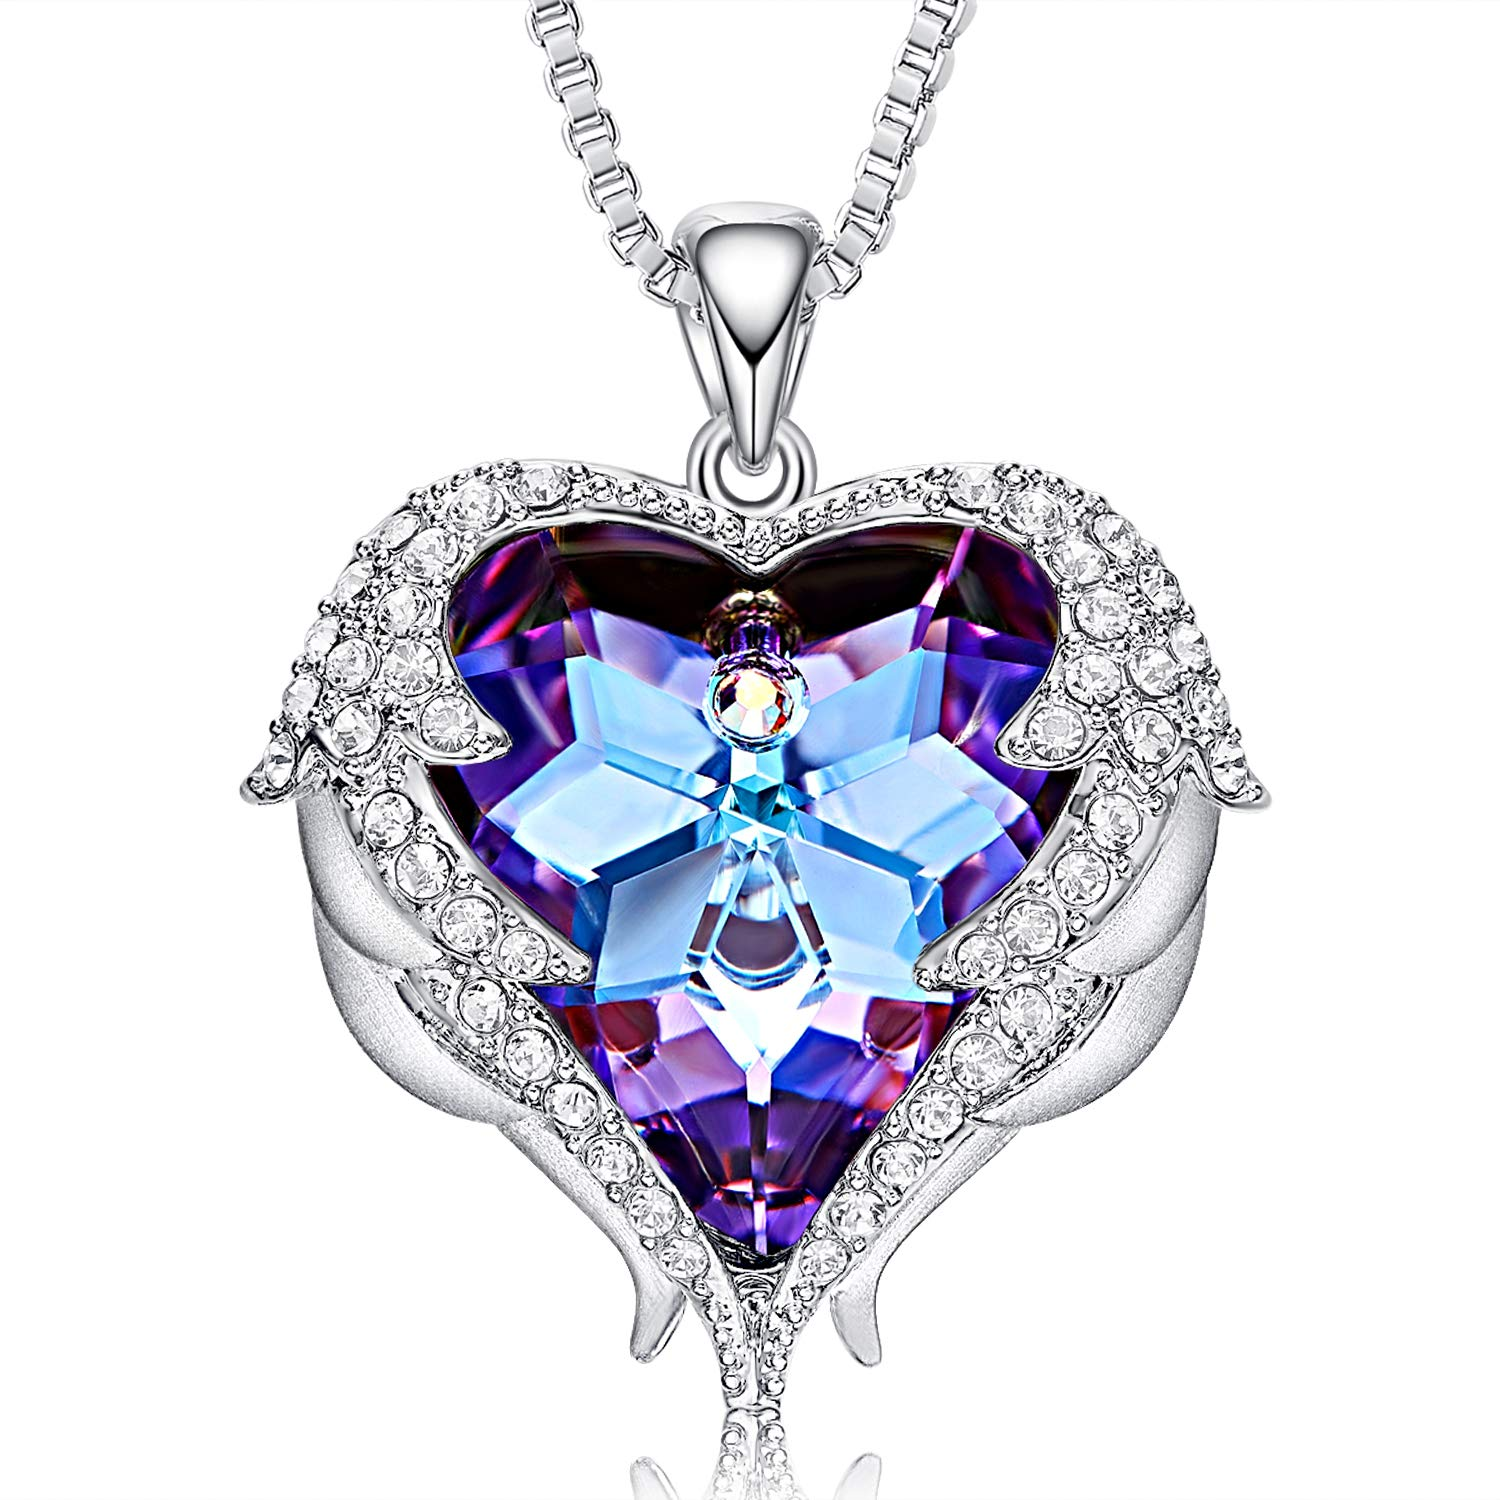 CDE Angel Wing Necklaces for Women Christmas Jewelry Gifts Embellished with Crystals from Swarovski Pendant Necklace Heart of Ocean Jewelry with GIF Box